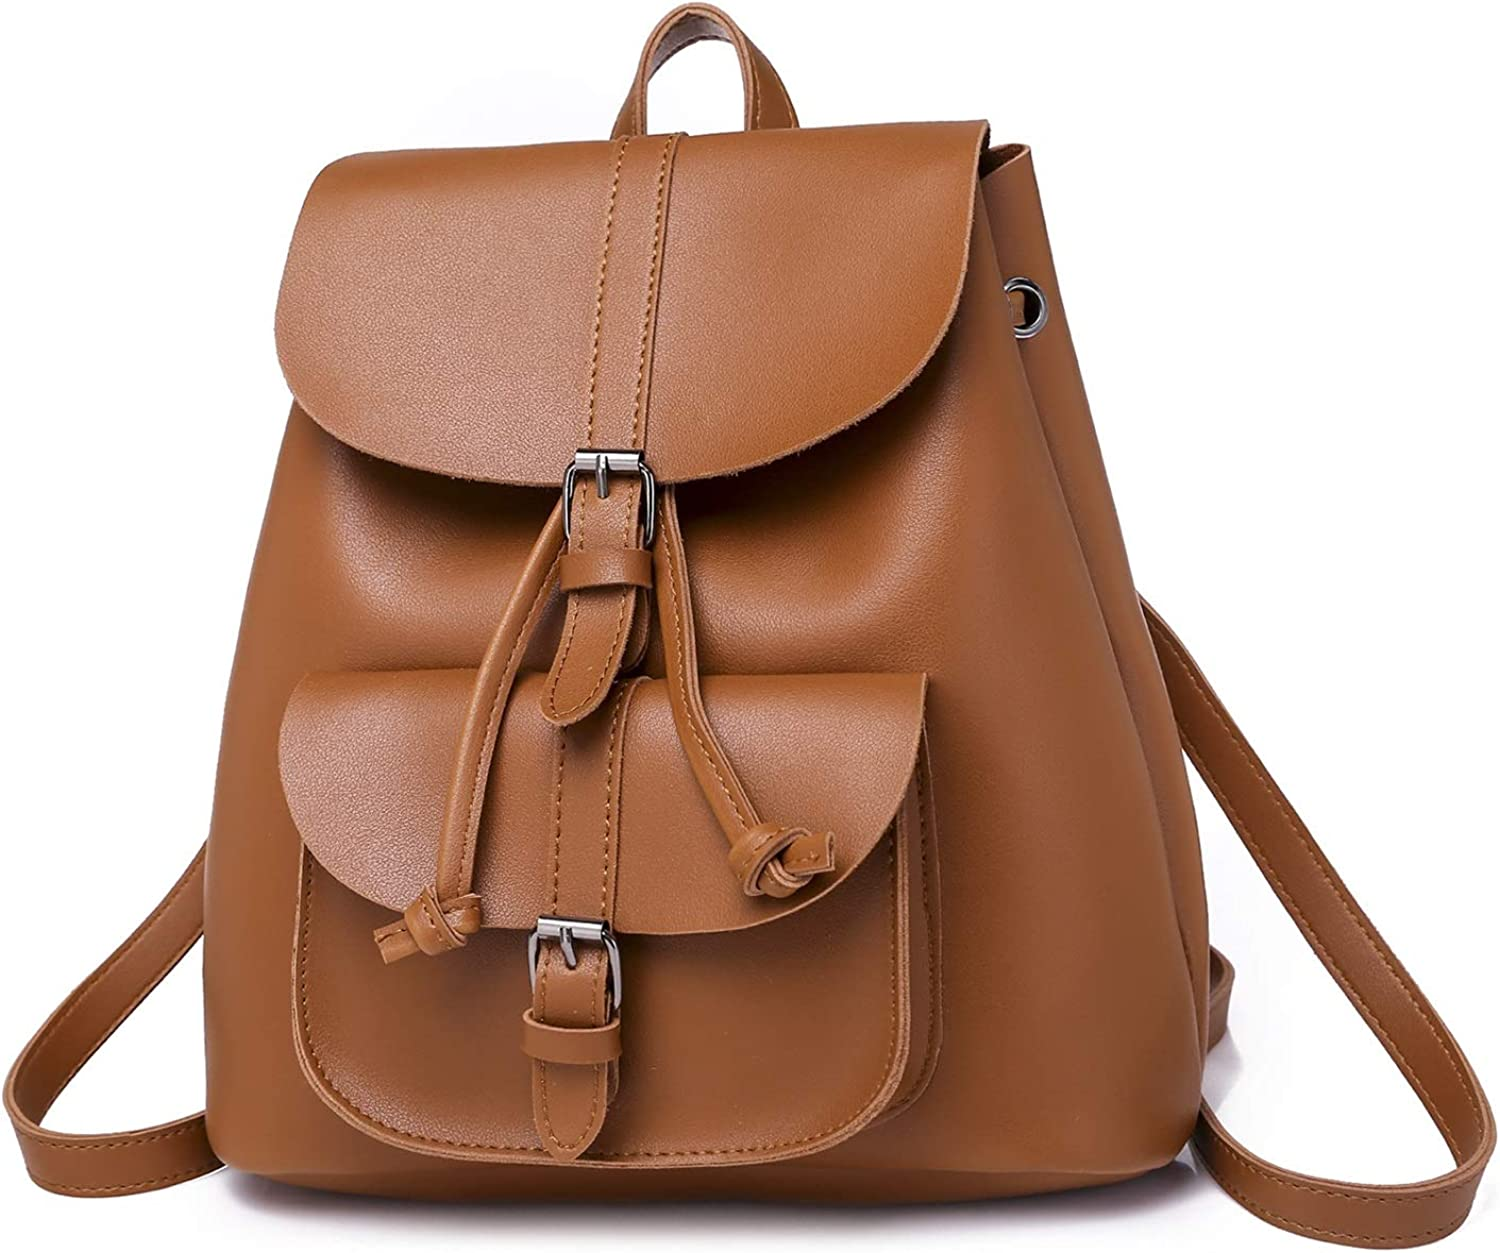 Women's Backpack Retro Style Pu Leather Women's Backpack Trend Bag Suitable for Outdoor Travel Shopping (color   Yellow Brown)